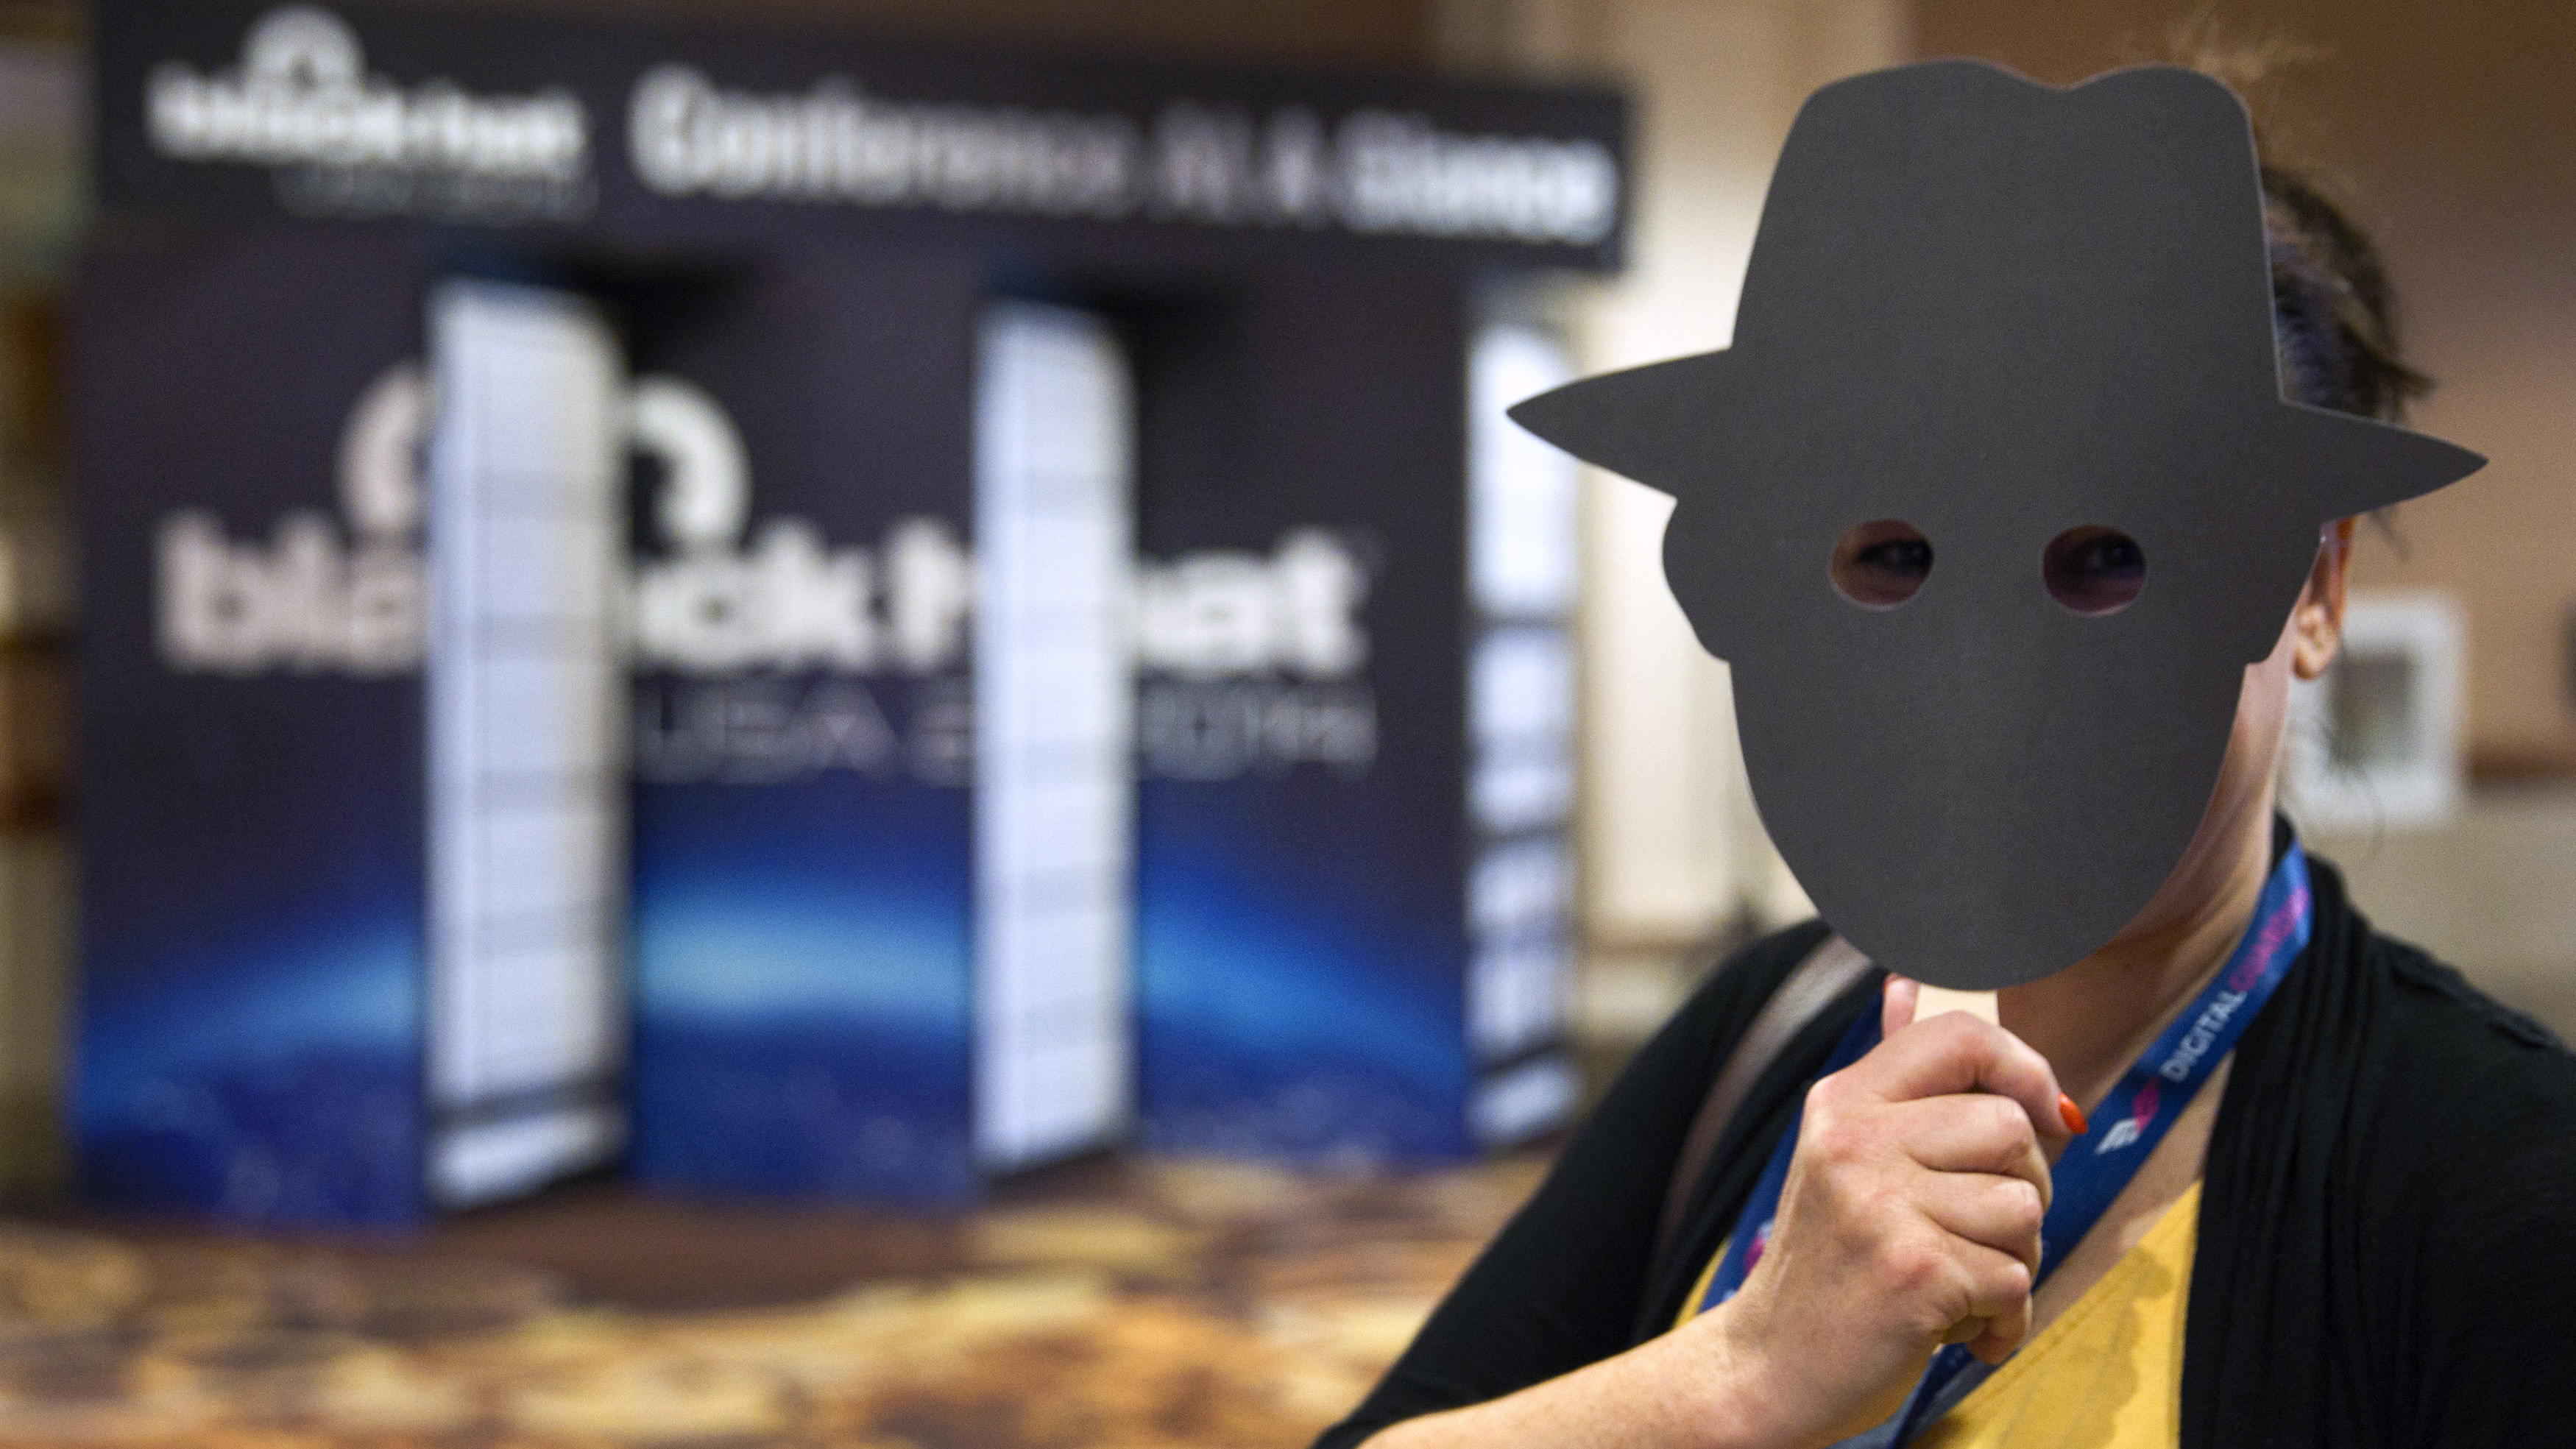 "Tani Currin, marketing events manager for computer security software and hardware developer Sophos, holds an ""anti-selfie"" mask during the Black Hat USA 2014 hacker conference at the Mandalay Bay Convention Center in Las Vegas, Nevada August 5, 2014. The mask is part of a privacy awareness marketing campaign, she said. Sophos is a developer of computer security software and hardware. REUTERS/Steve Marcus (UNITED STATES - Tags: SCIENCE TECHNOLOGY BUSINESS SOCIETY) - RTR41DIB"